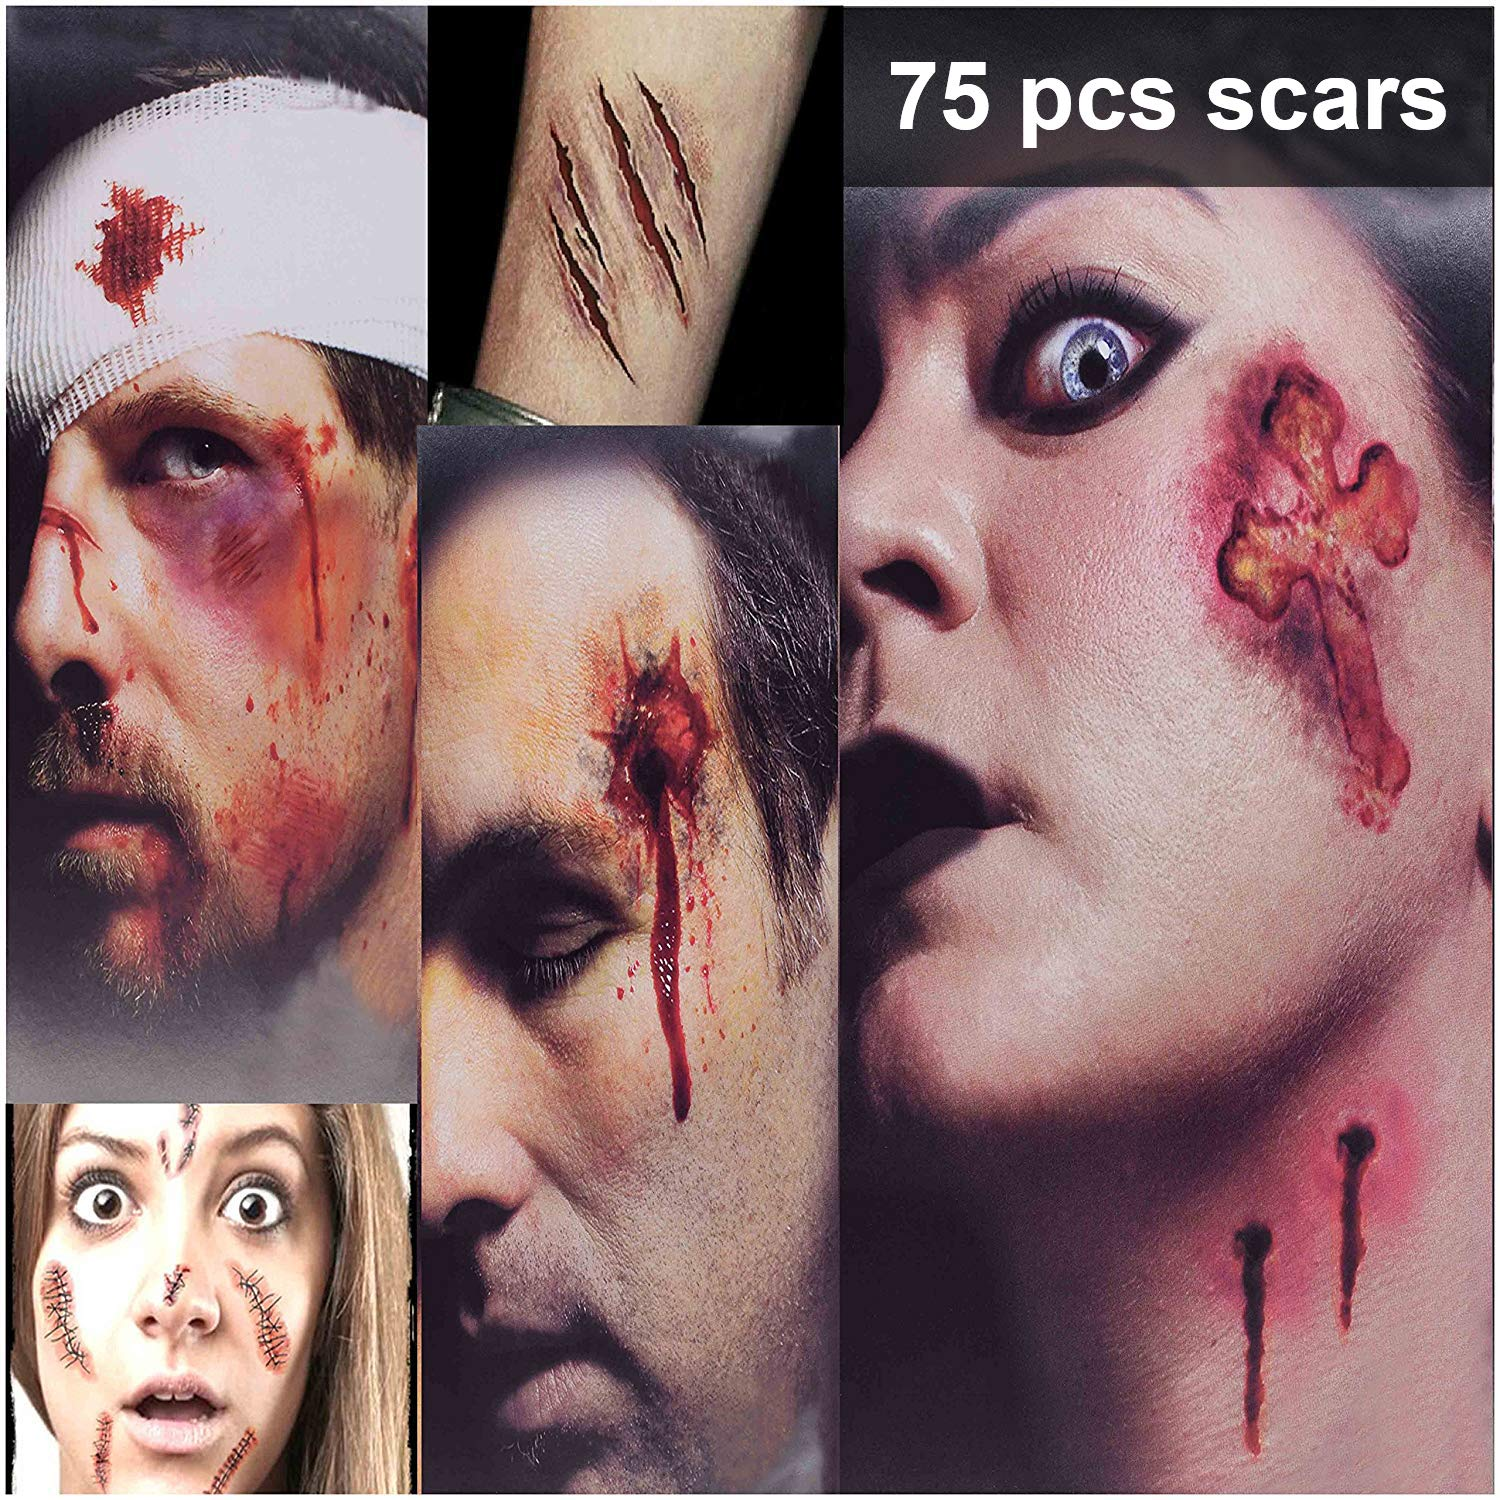 Zombie Makeup Tattoos, Halloween Zombie Makeup Kit, Scar Tattoos, 3(Large)+6(Small) Pack Vampire Bite Tattoo, Fake Scars, Halloween Makeup Kit, Waterproof Fake Blood, Safe Zombie Makeup Kit for Kids by HIGHEVER